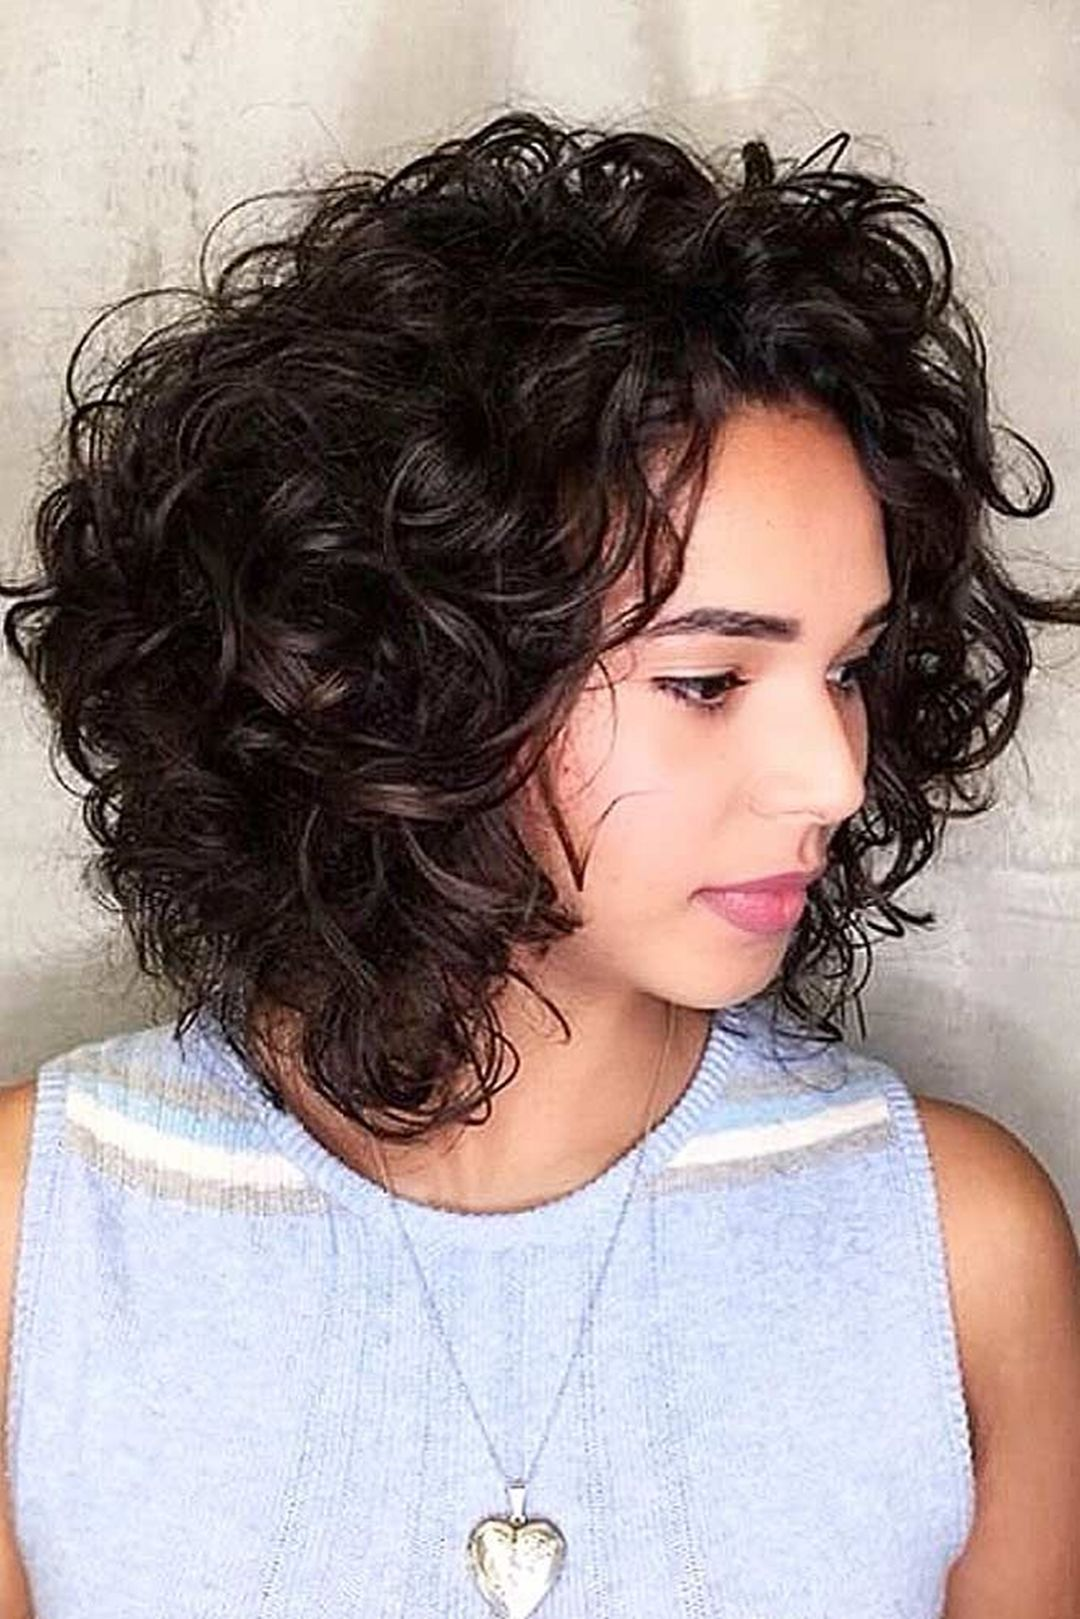 Pin on short curly hairstyles in 11  Bob haircut curly, Curly